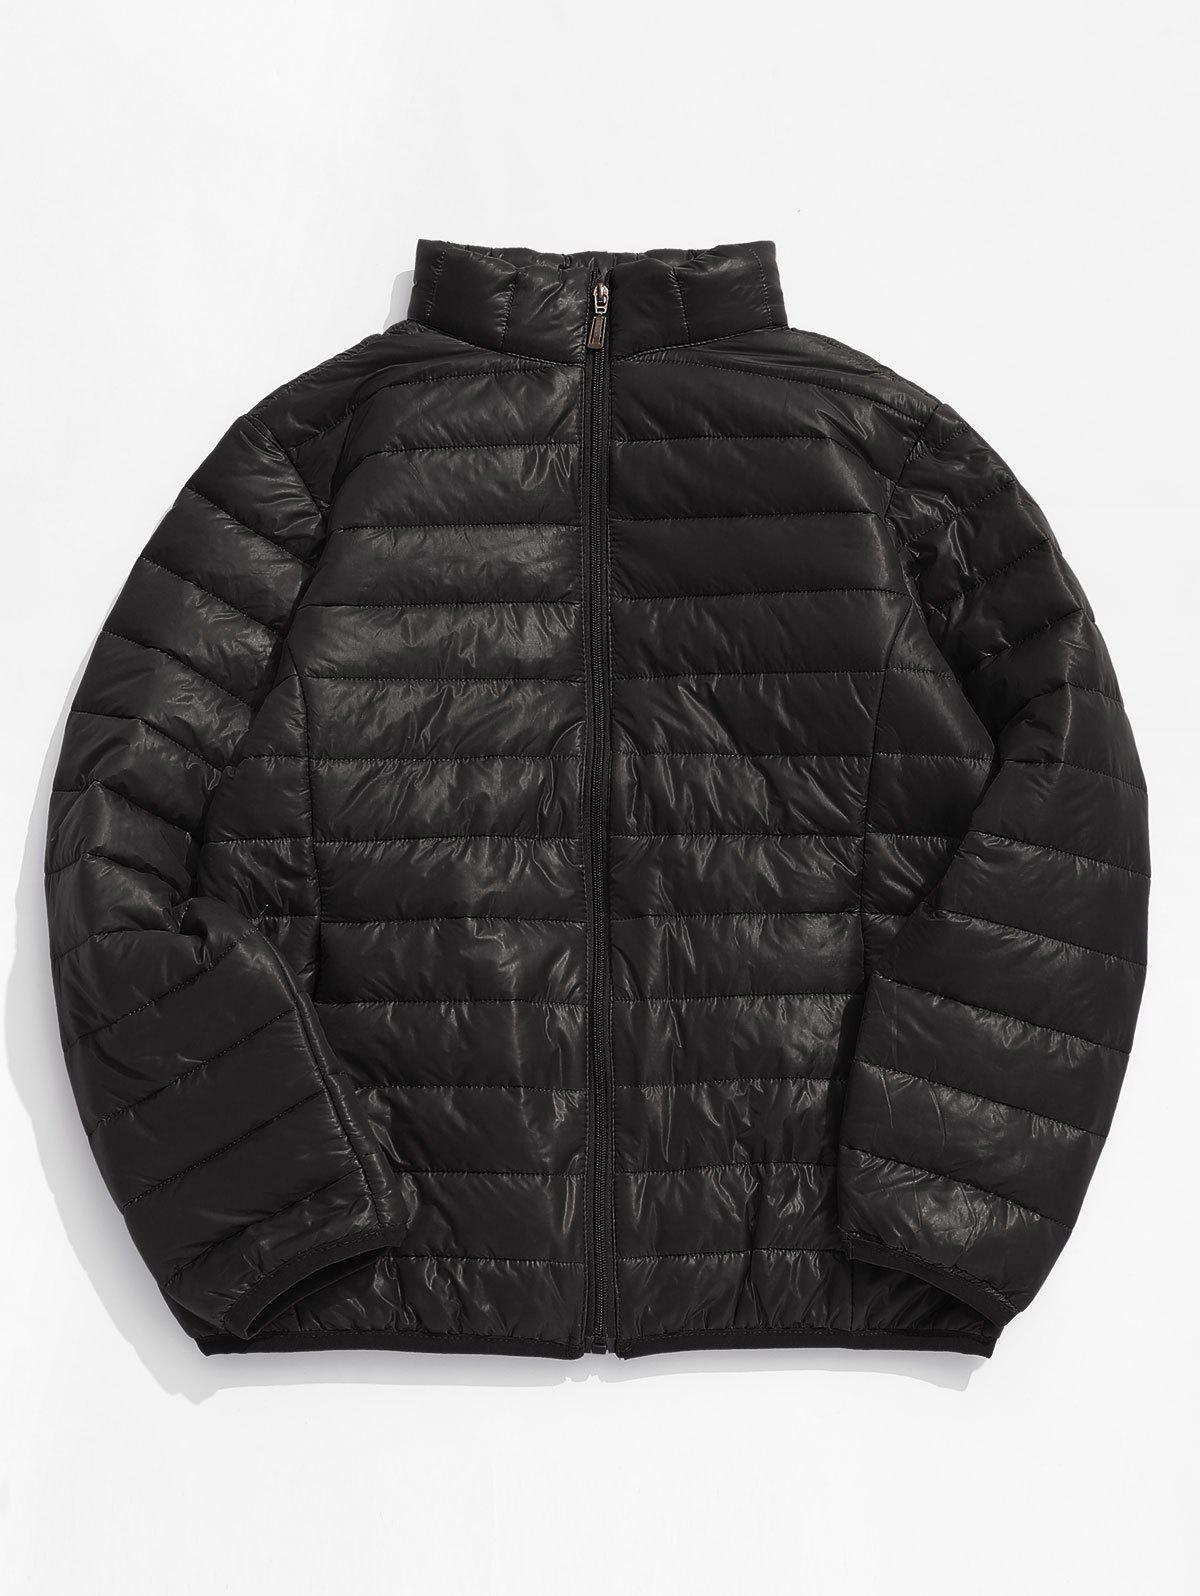 New Zip Up Solid Warm Lightweight Padded Jacket